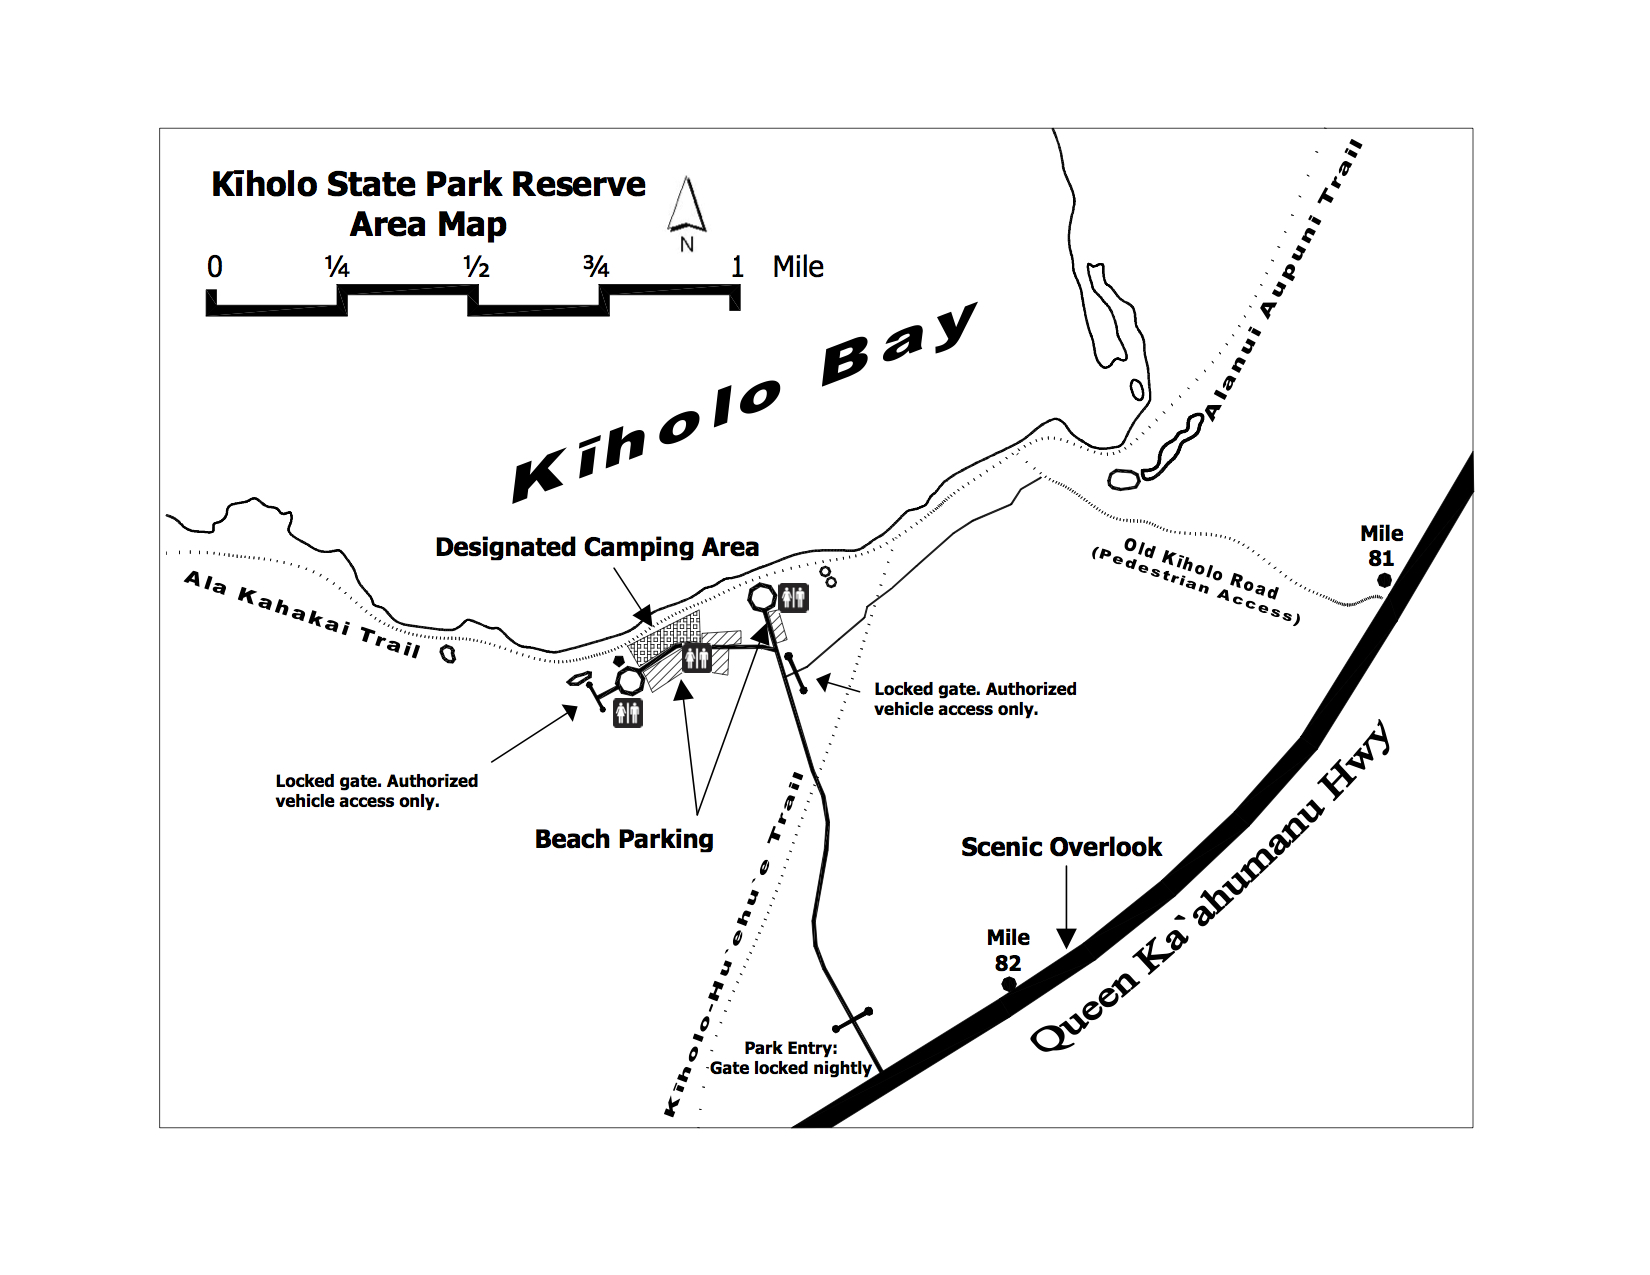 Kiholo State Park Map_Entire Area.jpg